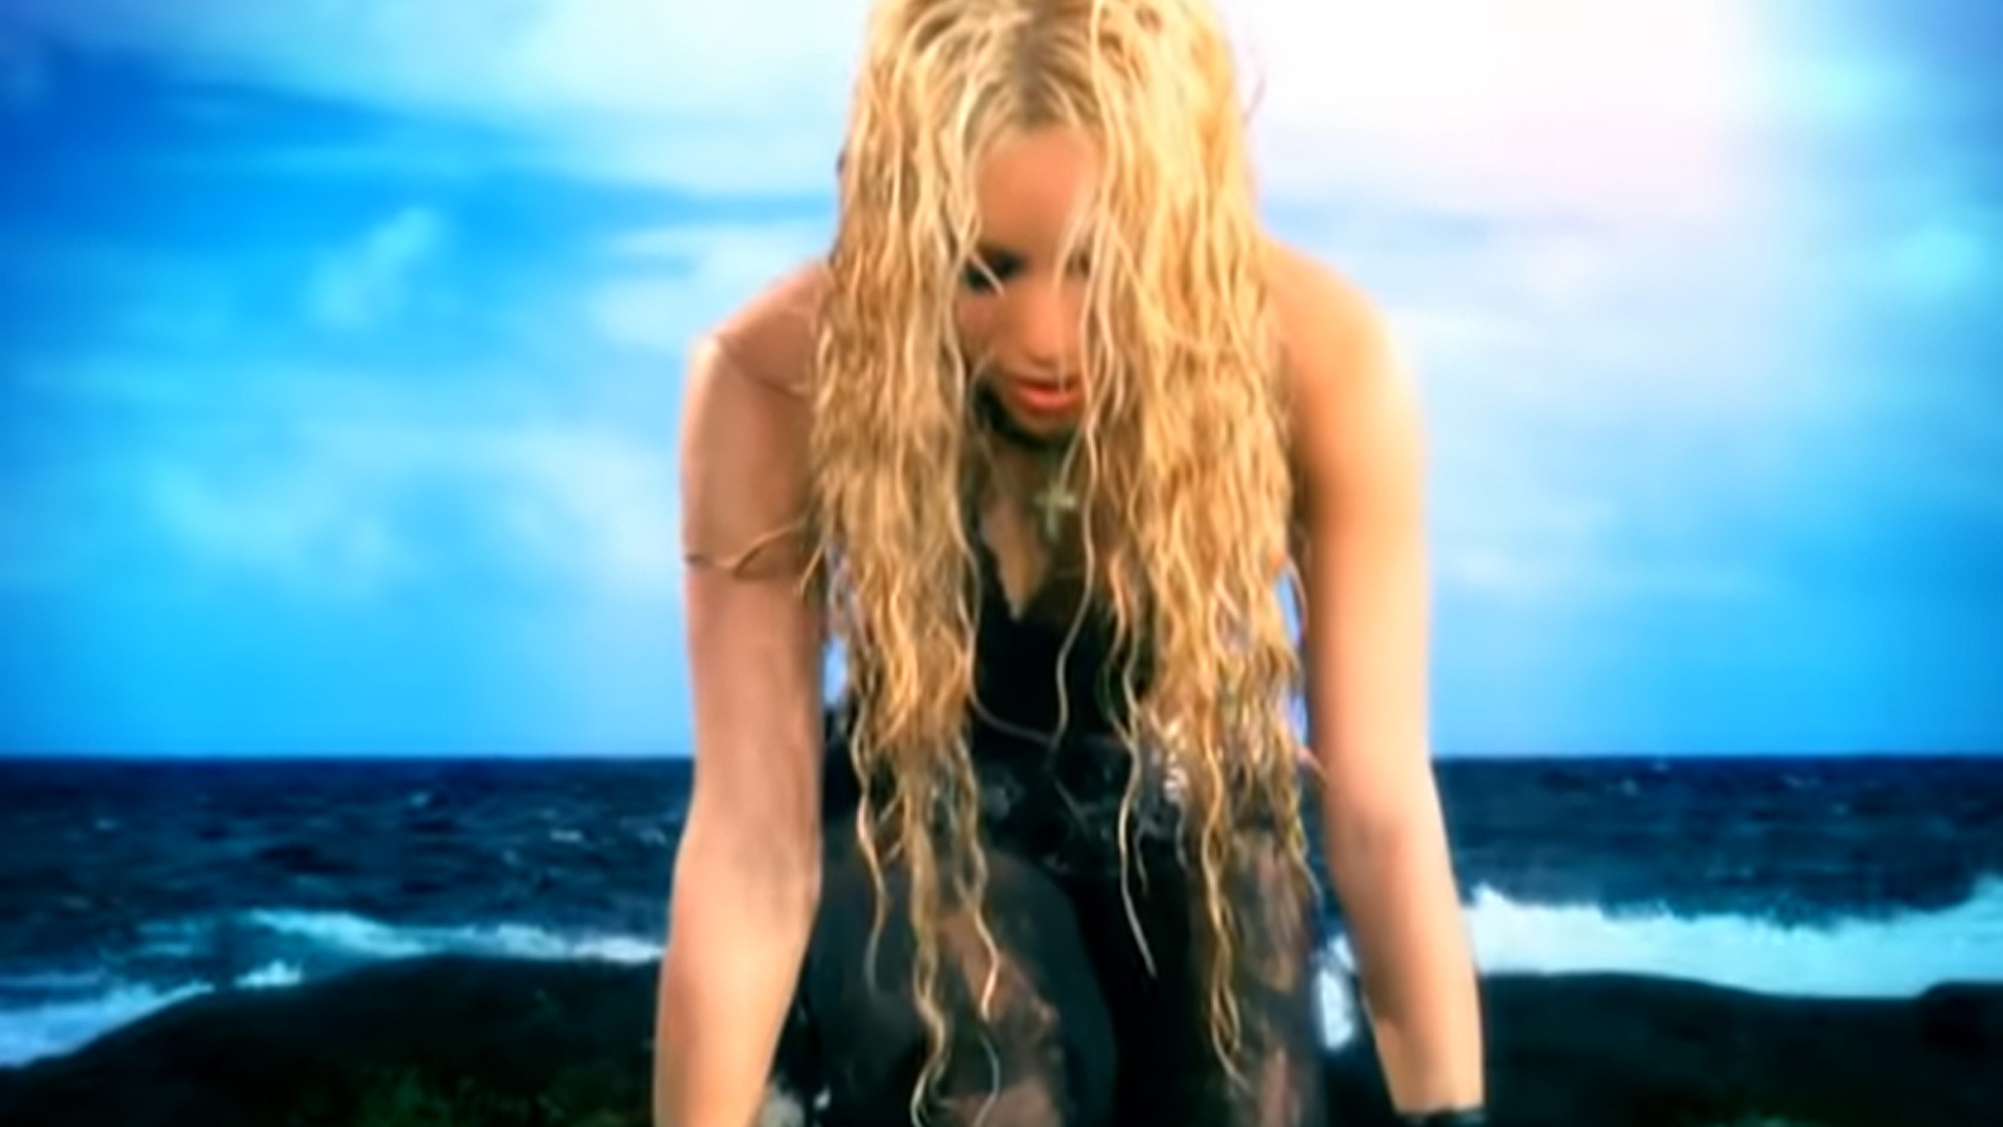 Suerte - Shakira thumbnail for lyrics